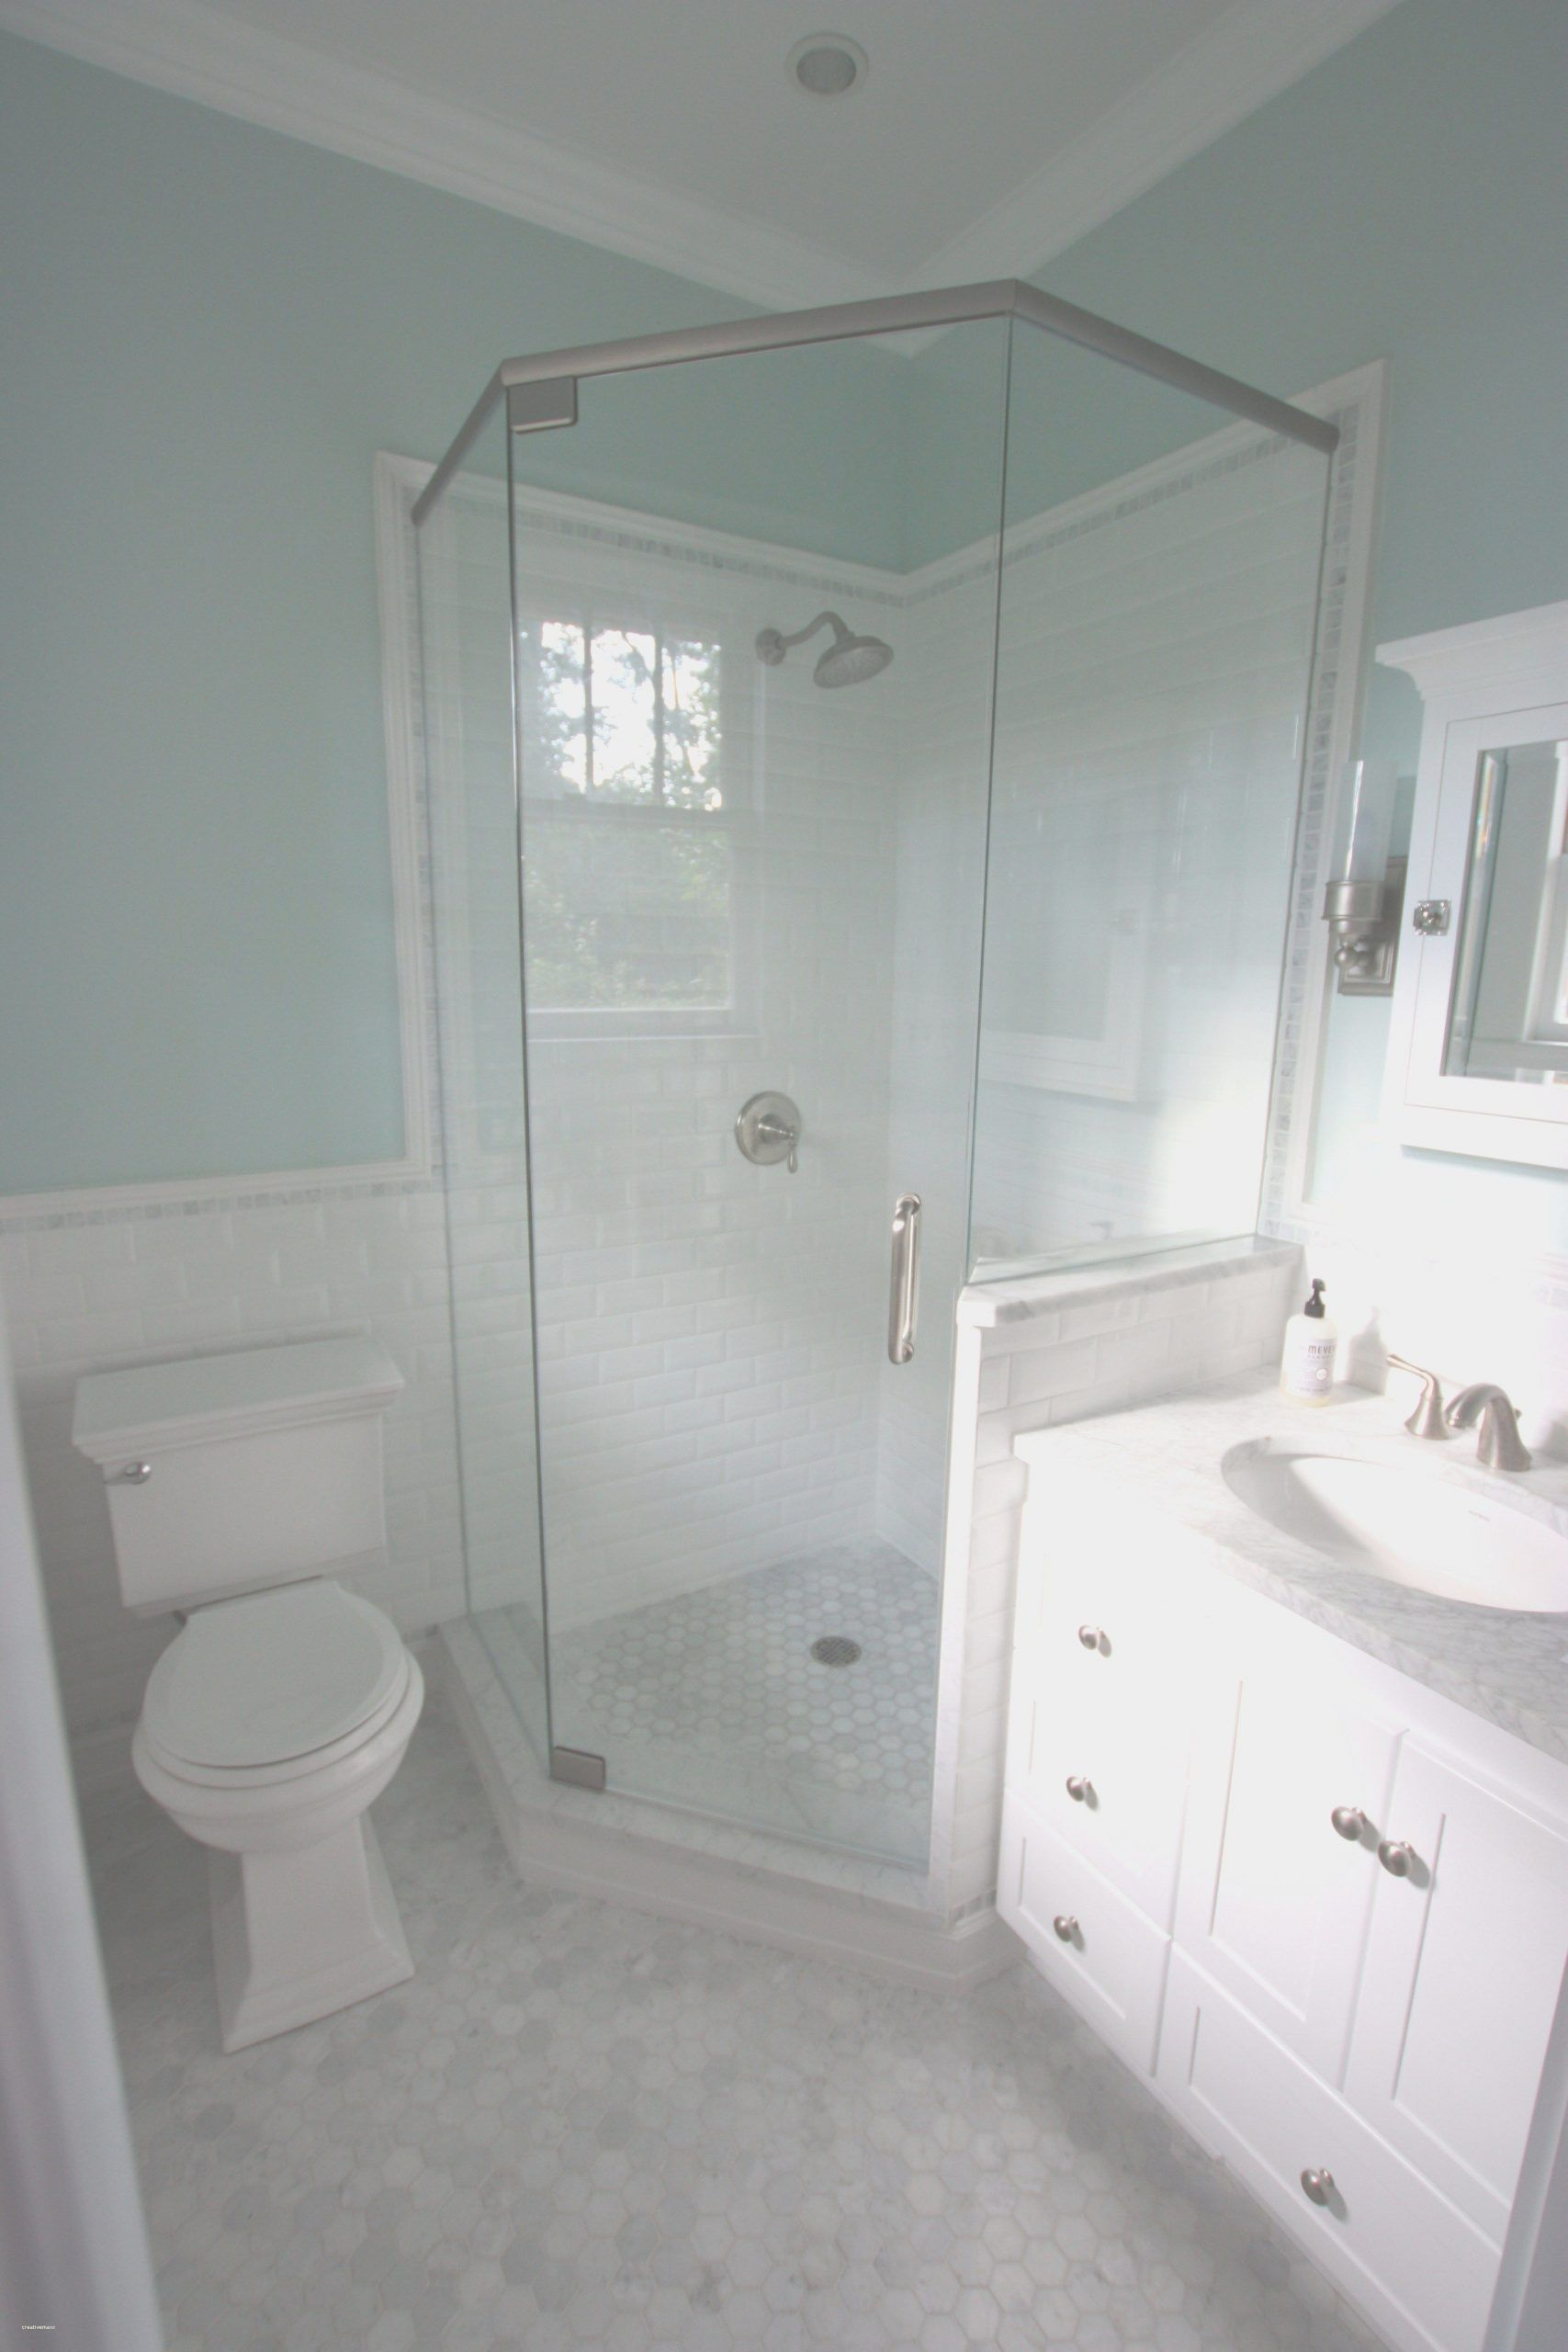 10 Home Depot Bathroom Colors Some Of The Most Unique And Exciting For Your Family Area Diyhous Home Depot Bathroom Small Bathroom Remodel Small Bathroom Home depot bathroom design ideas